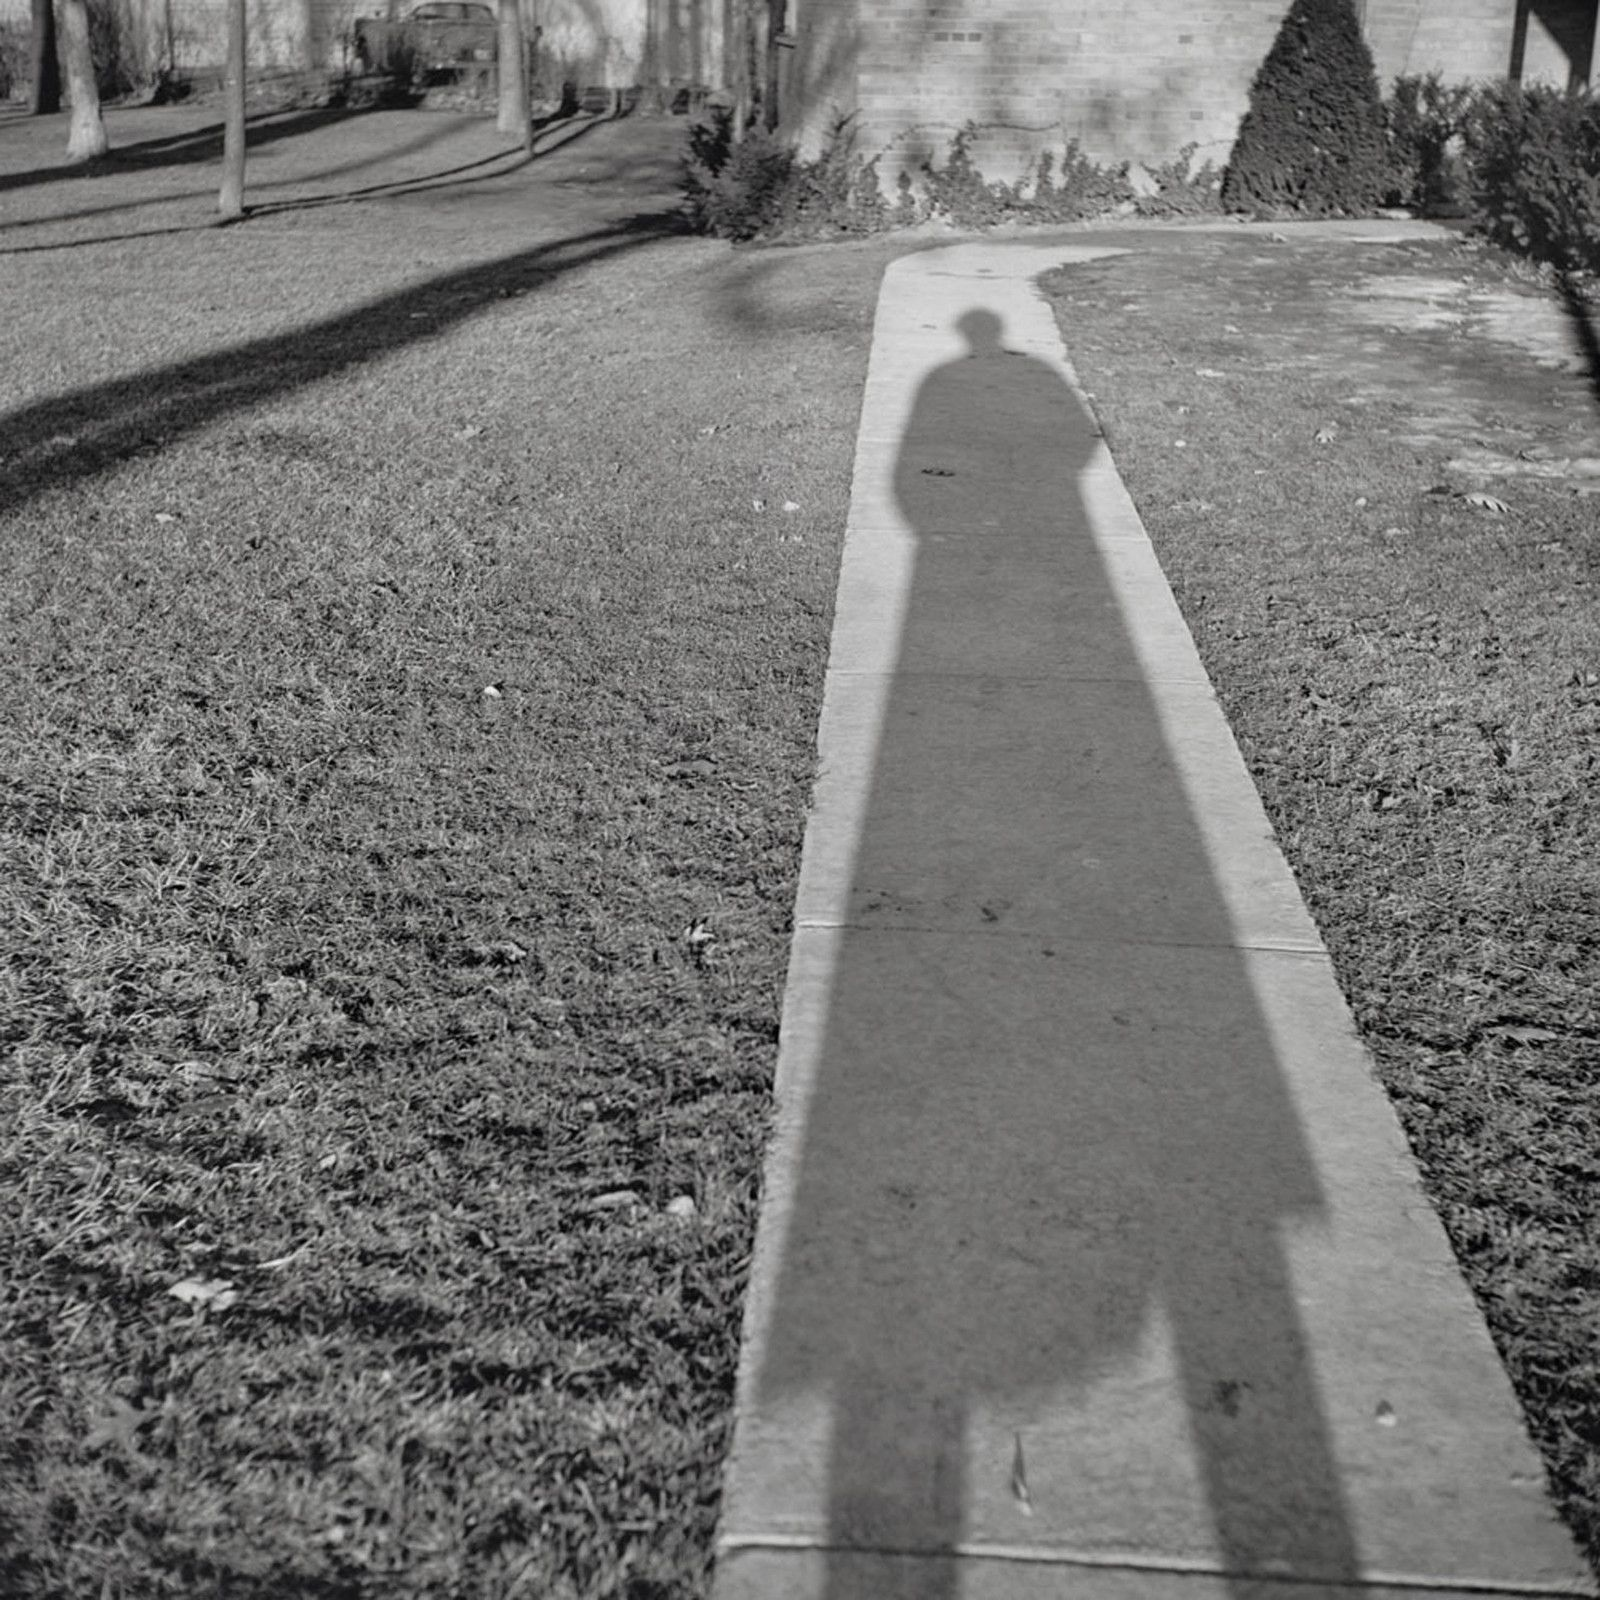 """Self-portrait, Chicago area"", 1956 de Vivian MAIER - Courtesy Les Douches la Galerie Paris"